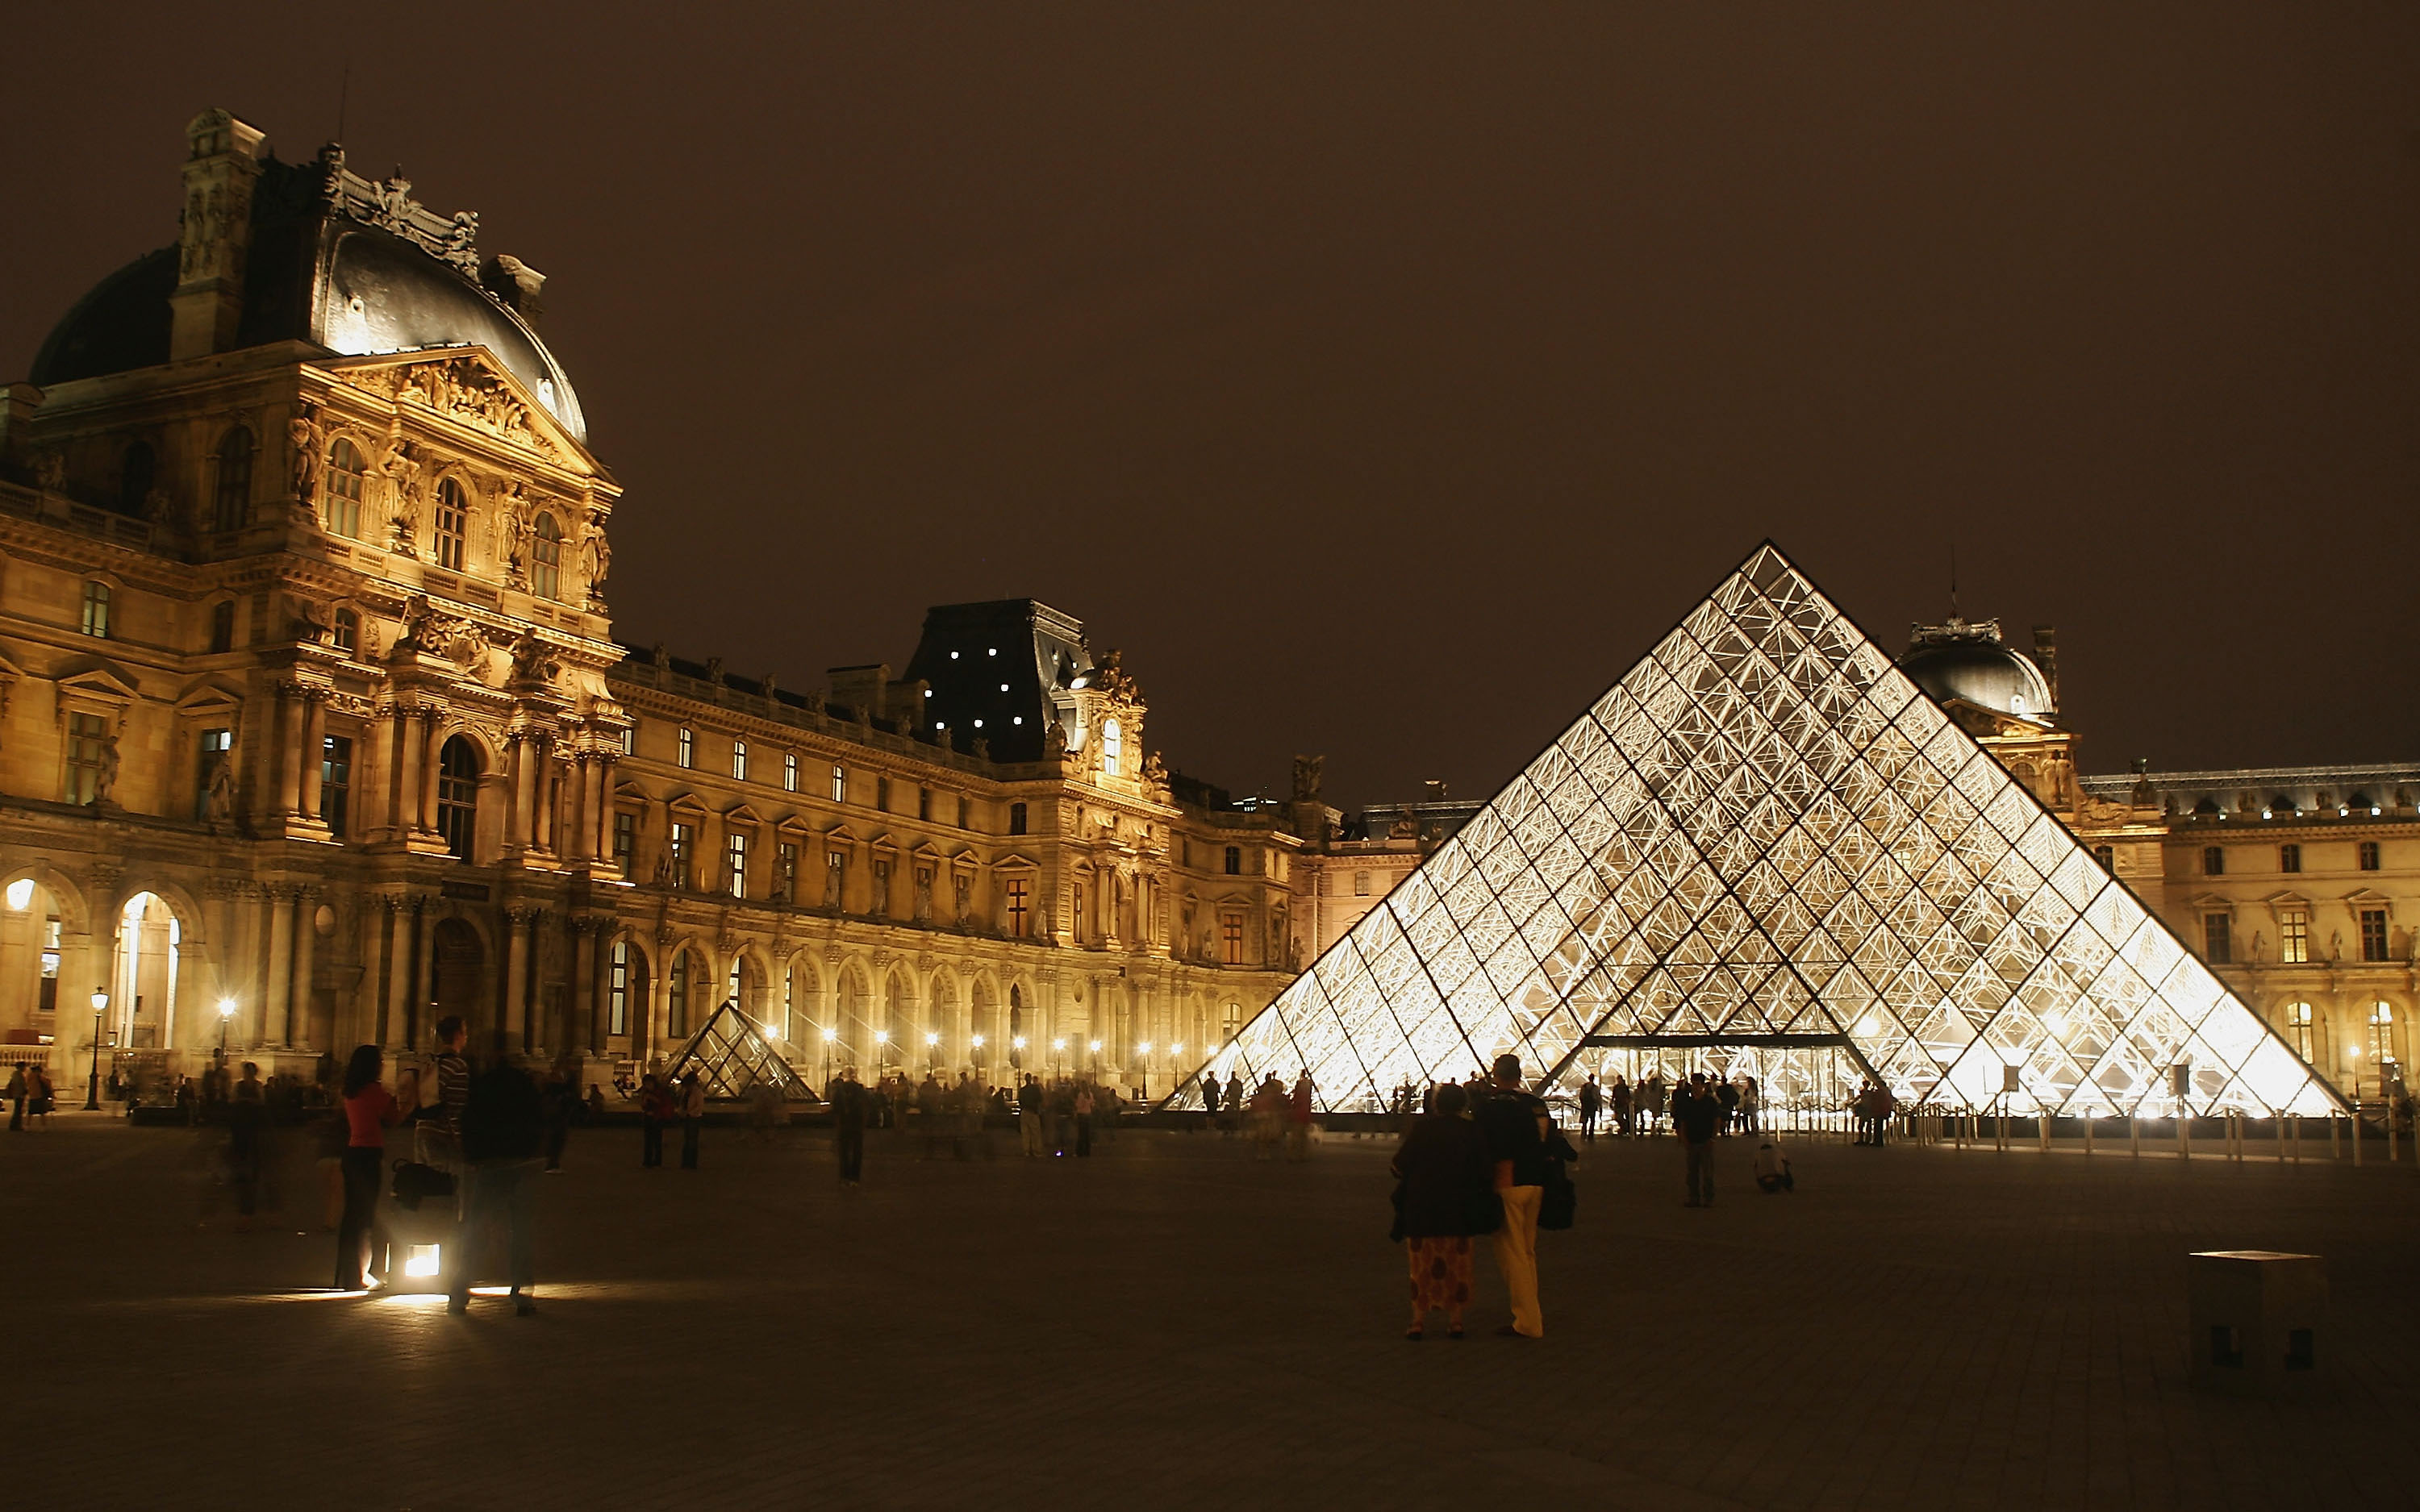 The Pyramide of the Louvre museum designed by I.M. Pei is seen on August 24, 2005 in Paris, France. (Photo by Pascal Le Segretain/Getty Images)